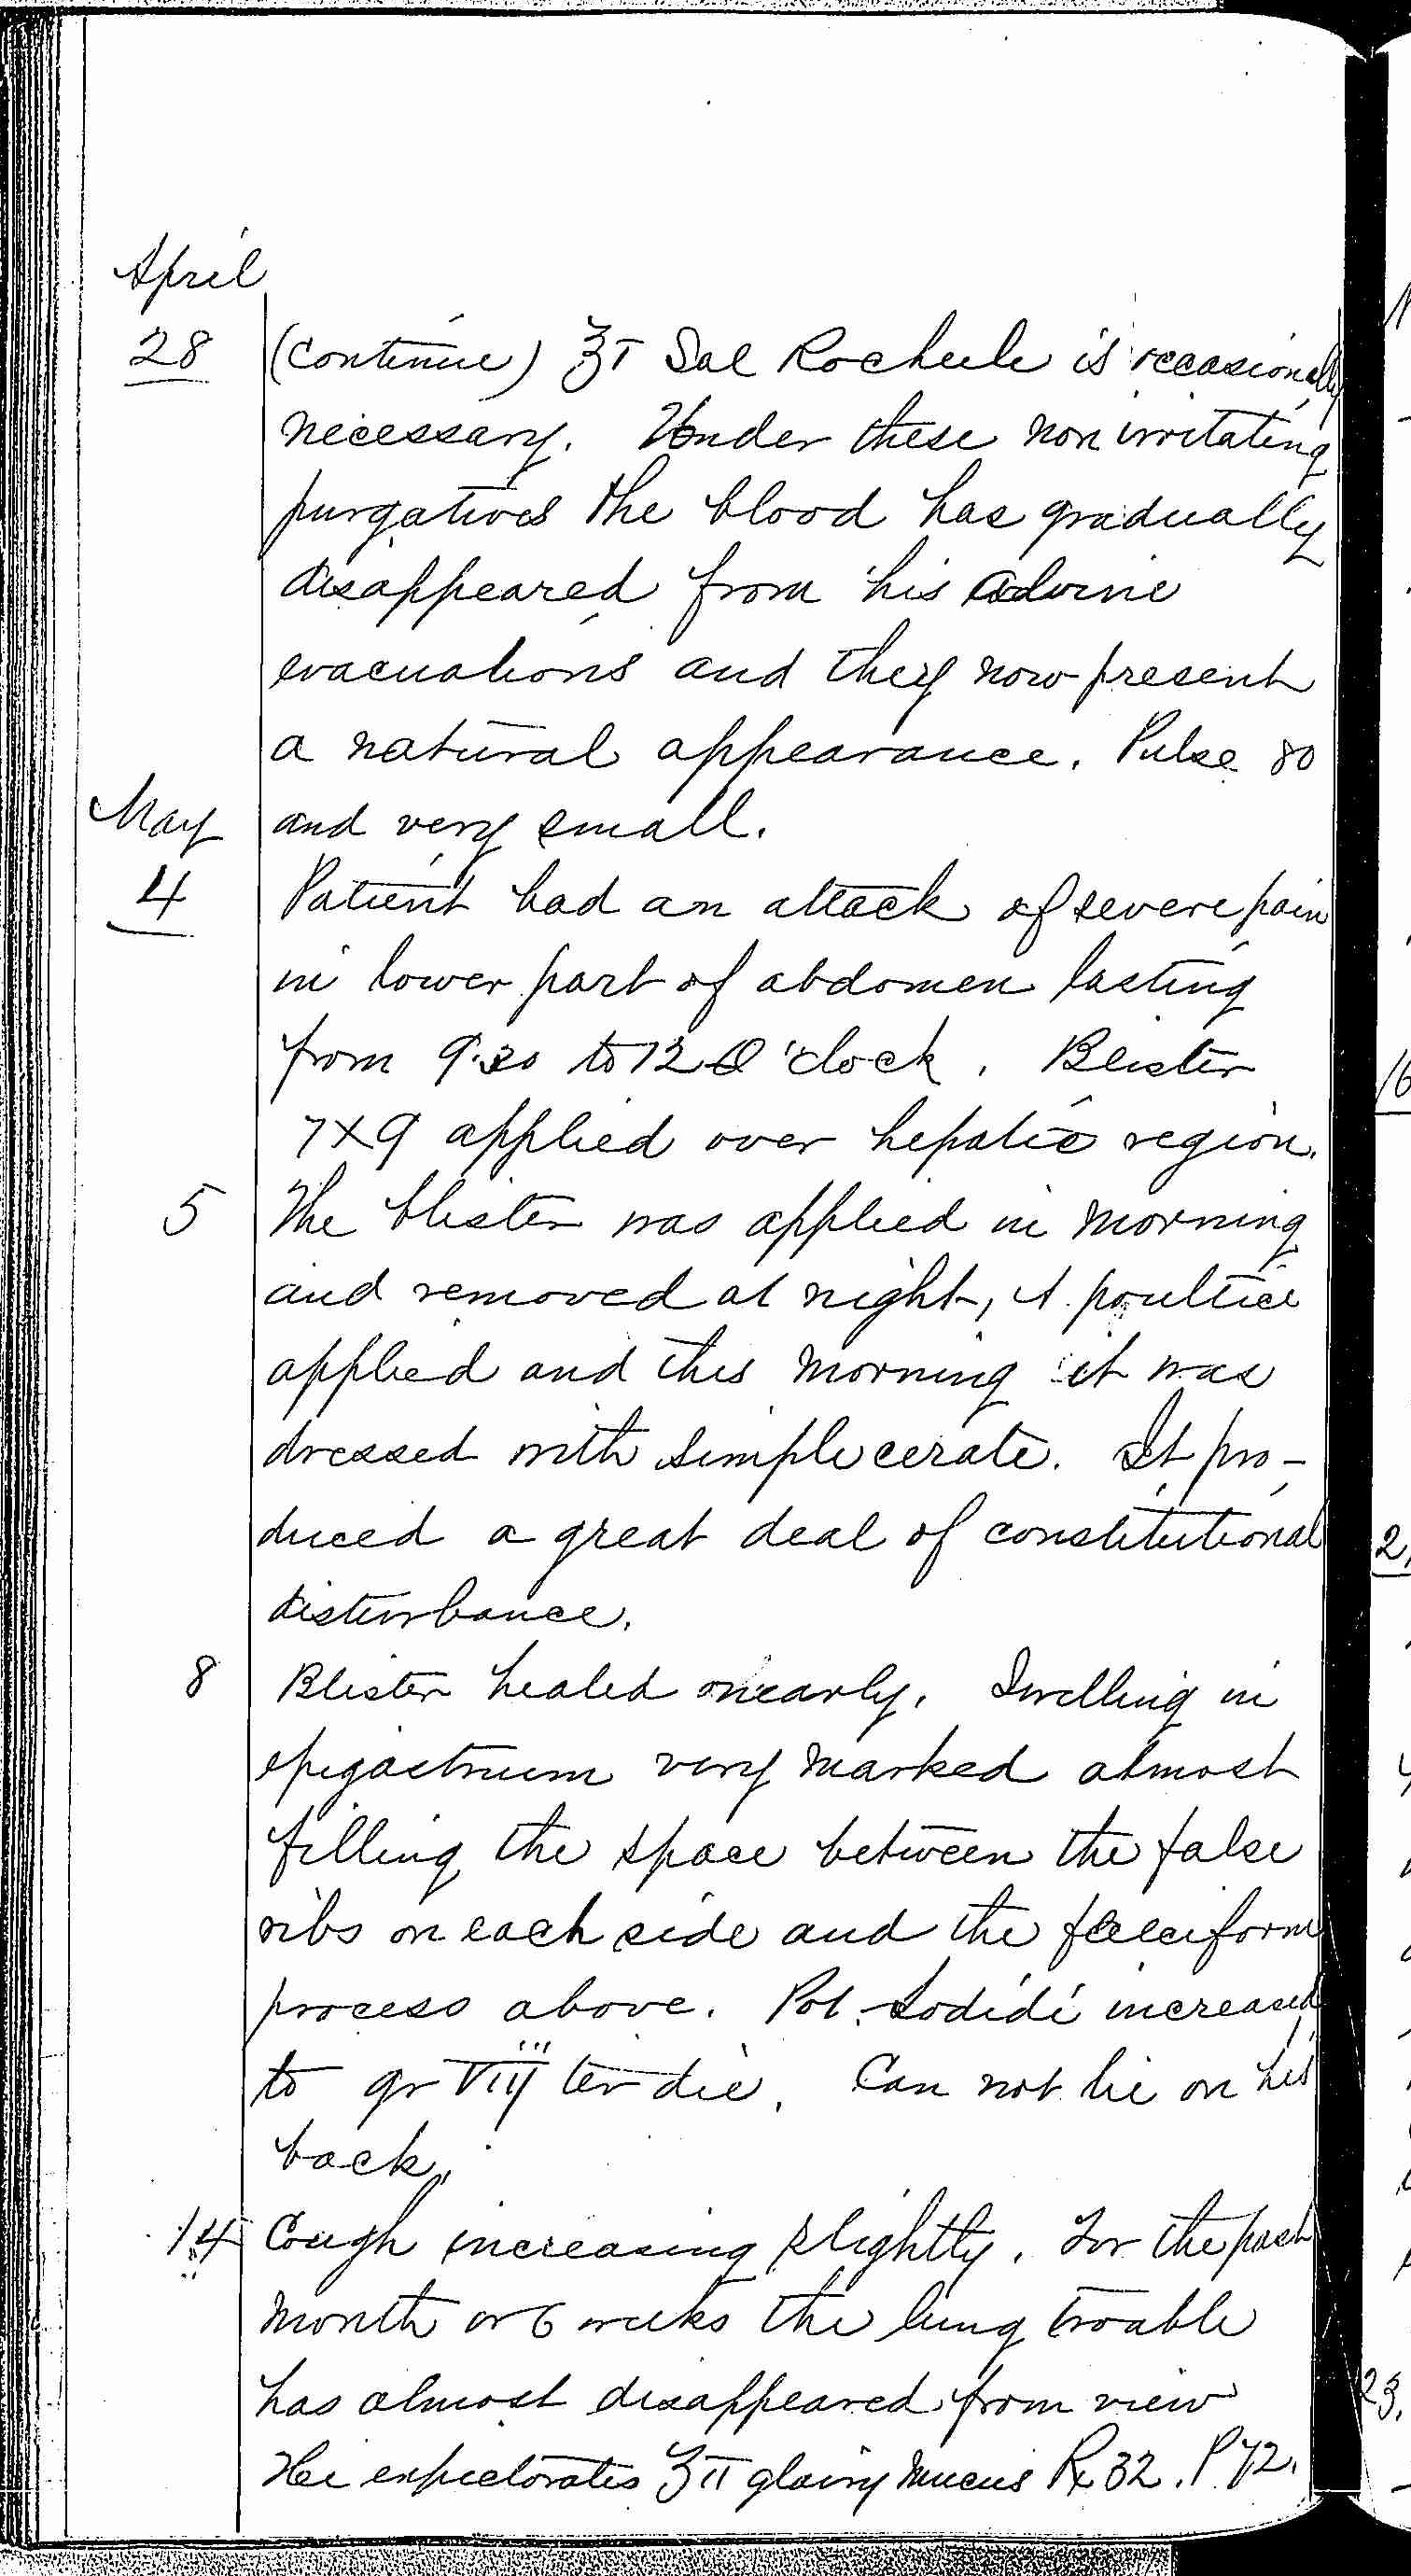 Entry for Charles Johnson (page 12 of 15) in the log Hospital Tickets and Case Papers - Naval Hospital - Washington, D.C. - 1868-69